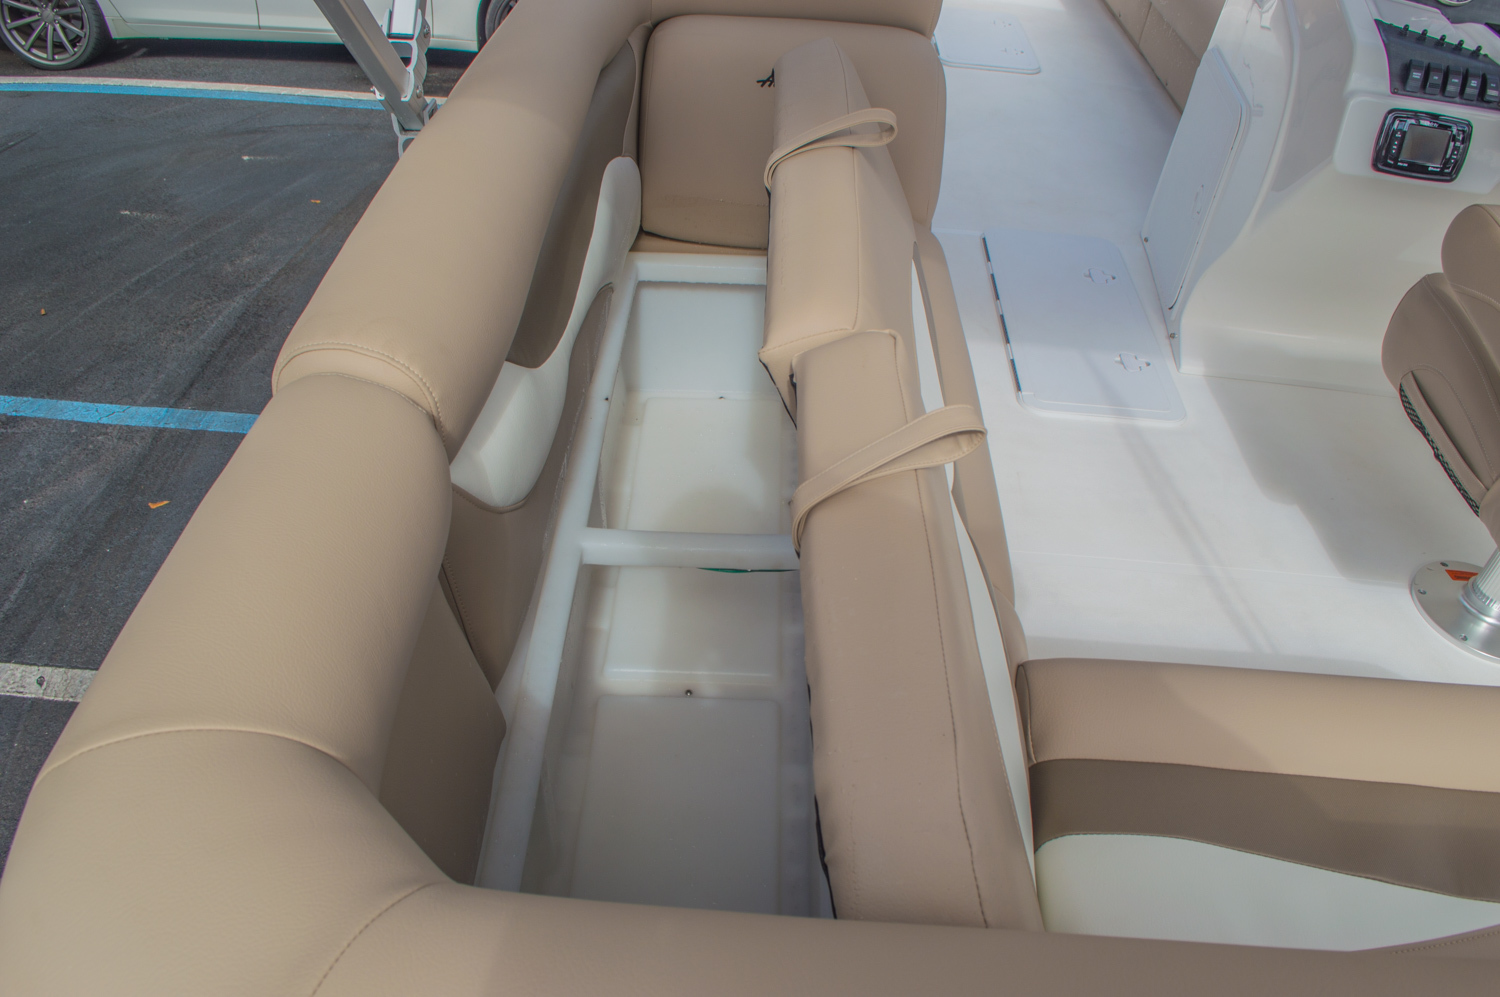 Thumbnail 21 for New 2016 Hurricane FunDeck FD 226 OB boat for sale in Vero Beach, FL